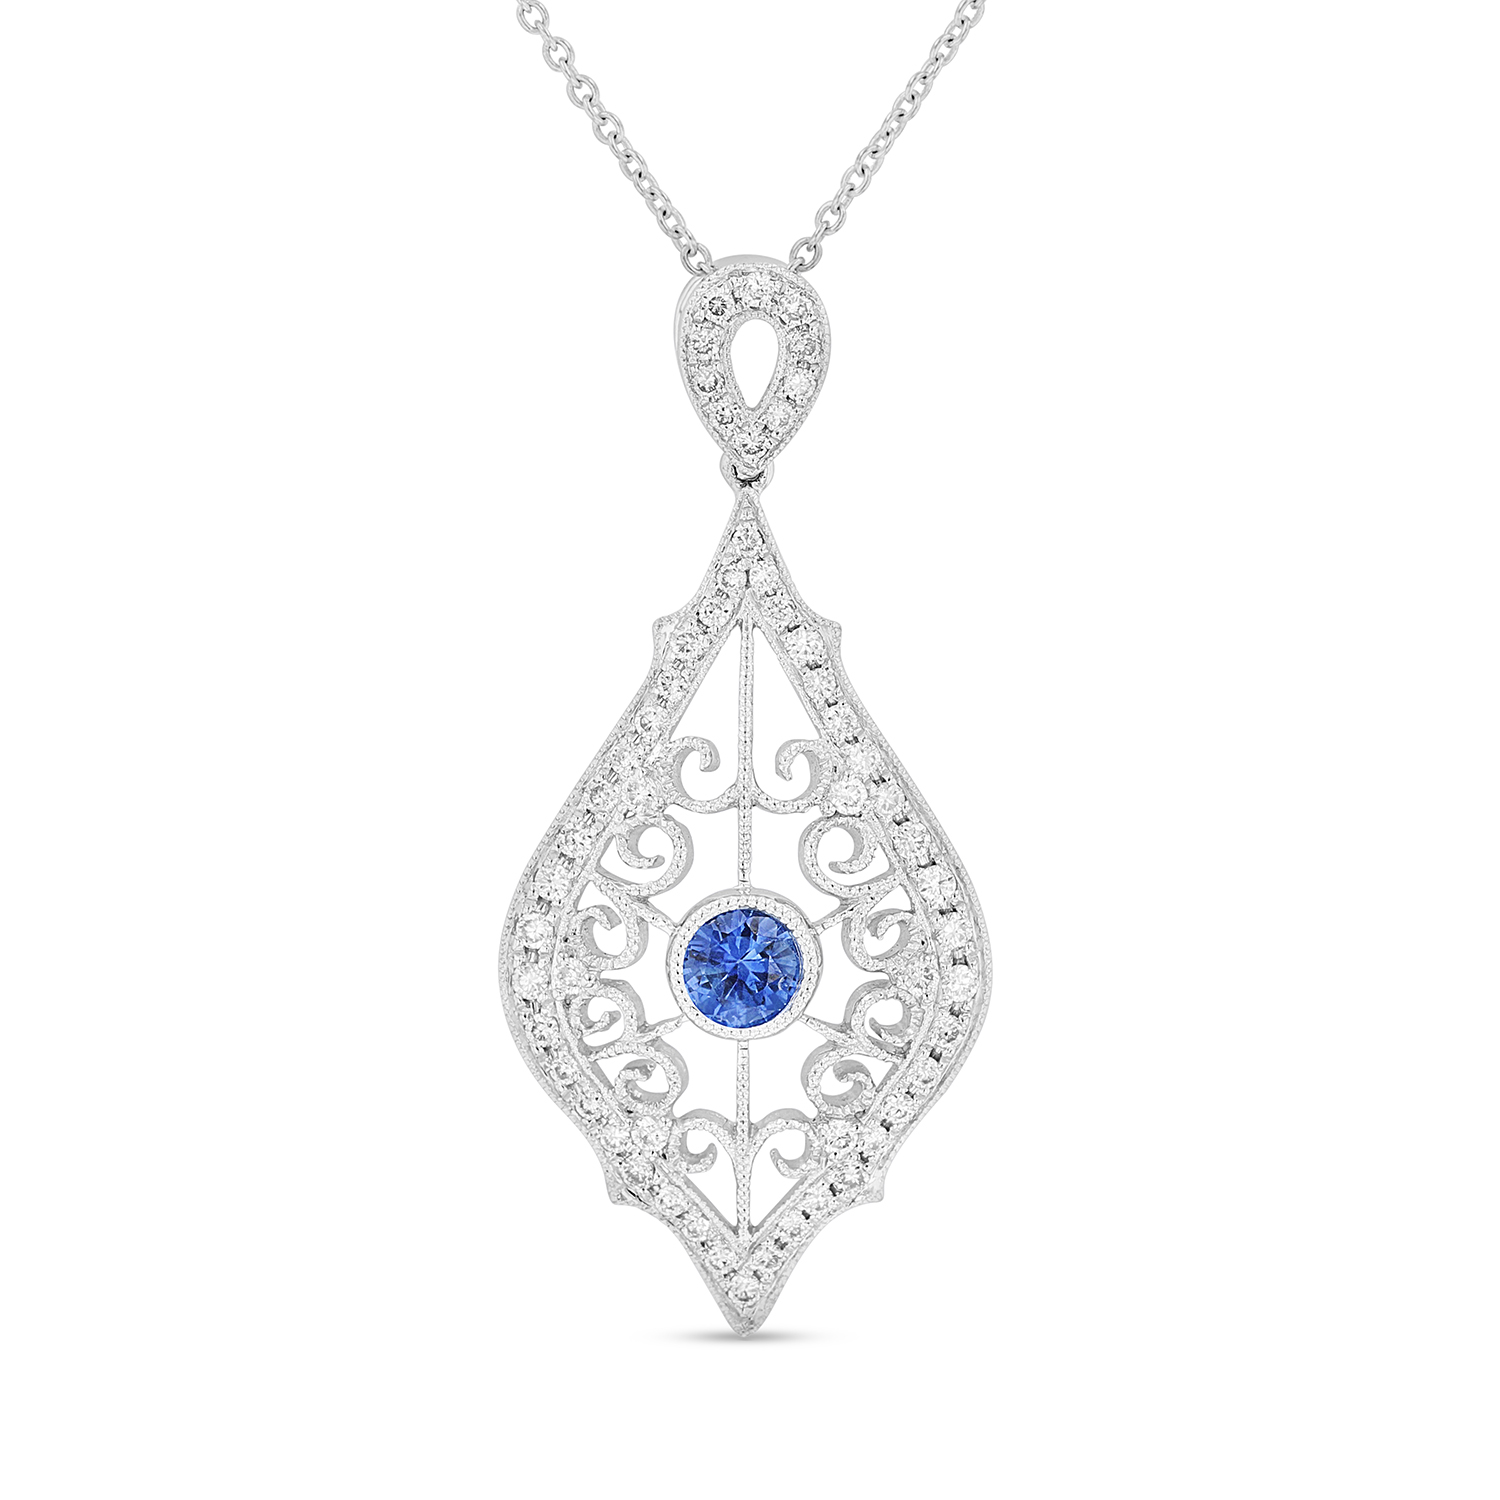 View 0.35ctw Diamond and Sapphire Pendant in 14k WG